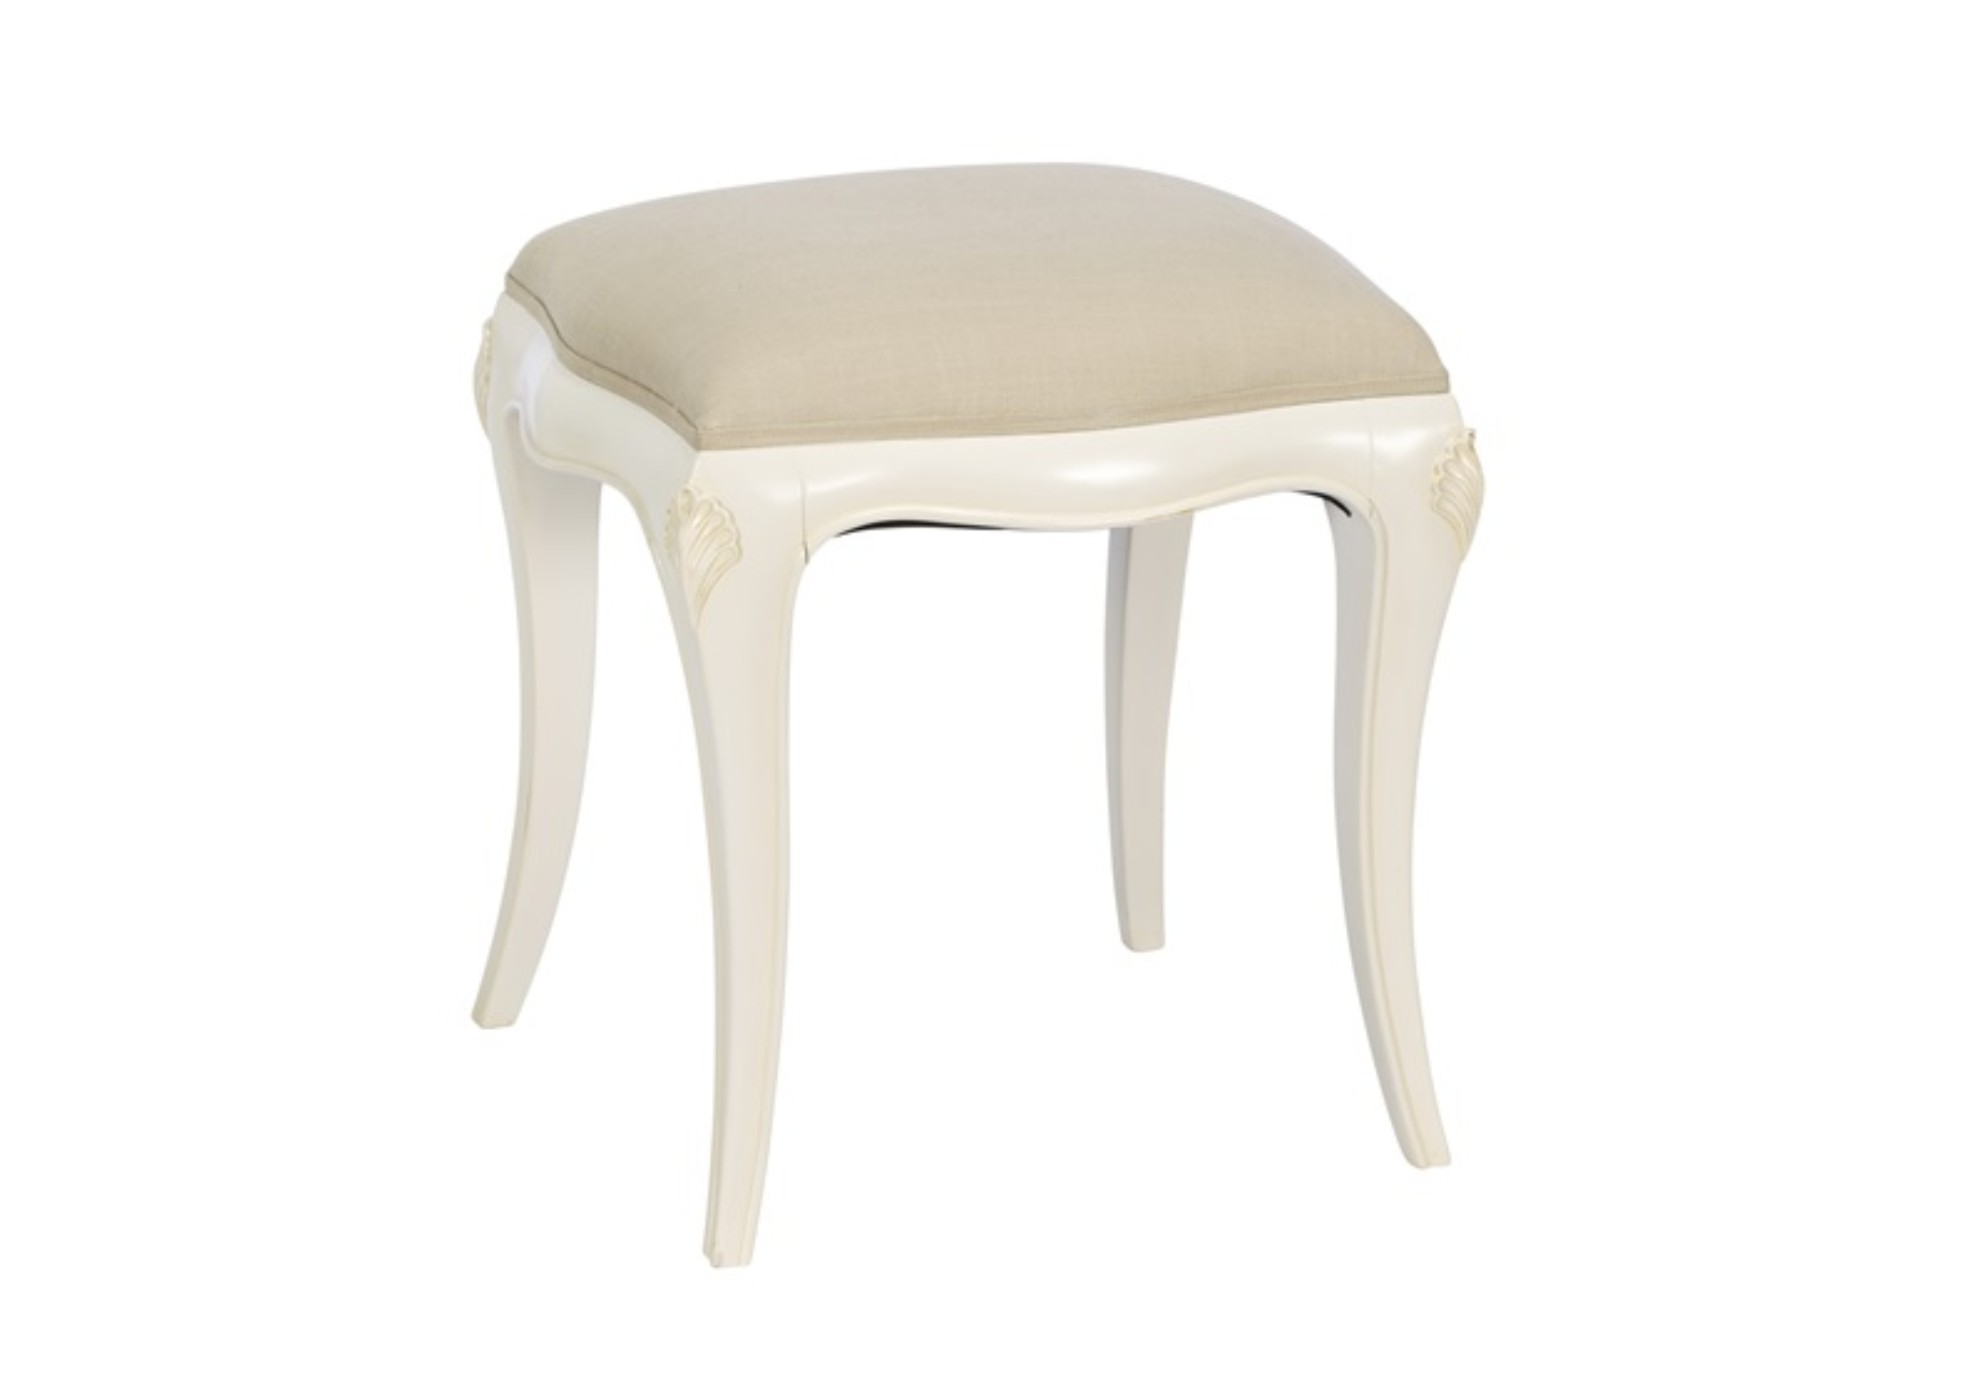 Painted Toulouse Dresser Stool